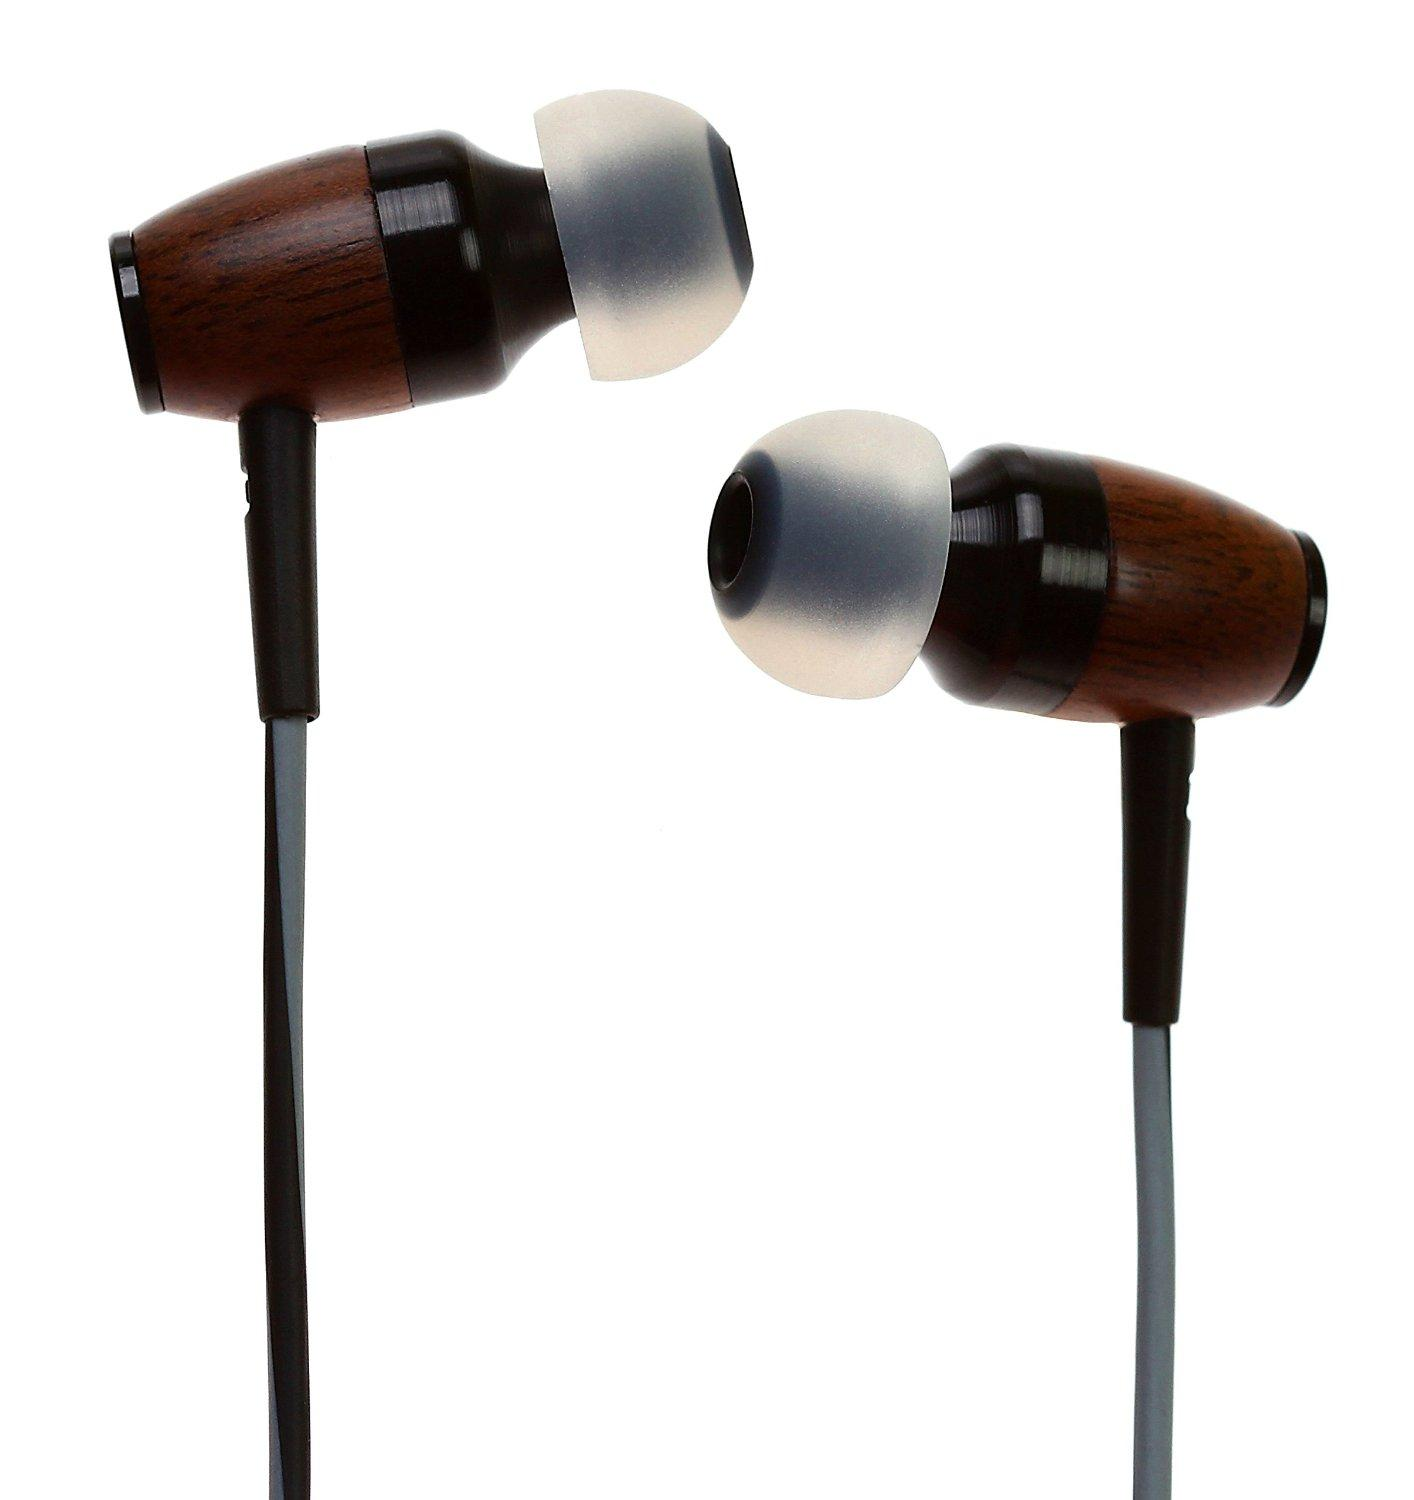 Symphonized DRM Premium Genuine Wood In-ear Noise-isolating Headphones with Mic (Pink)